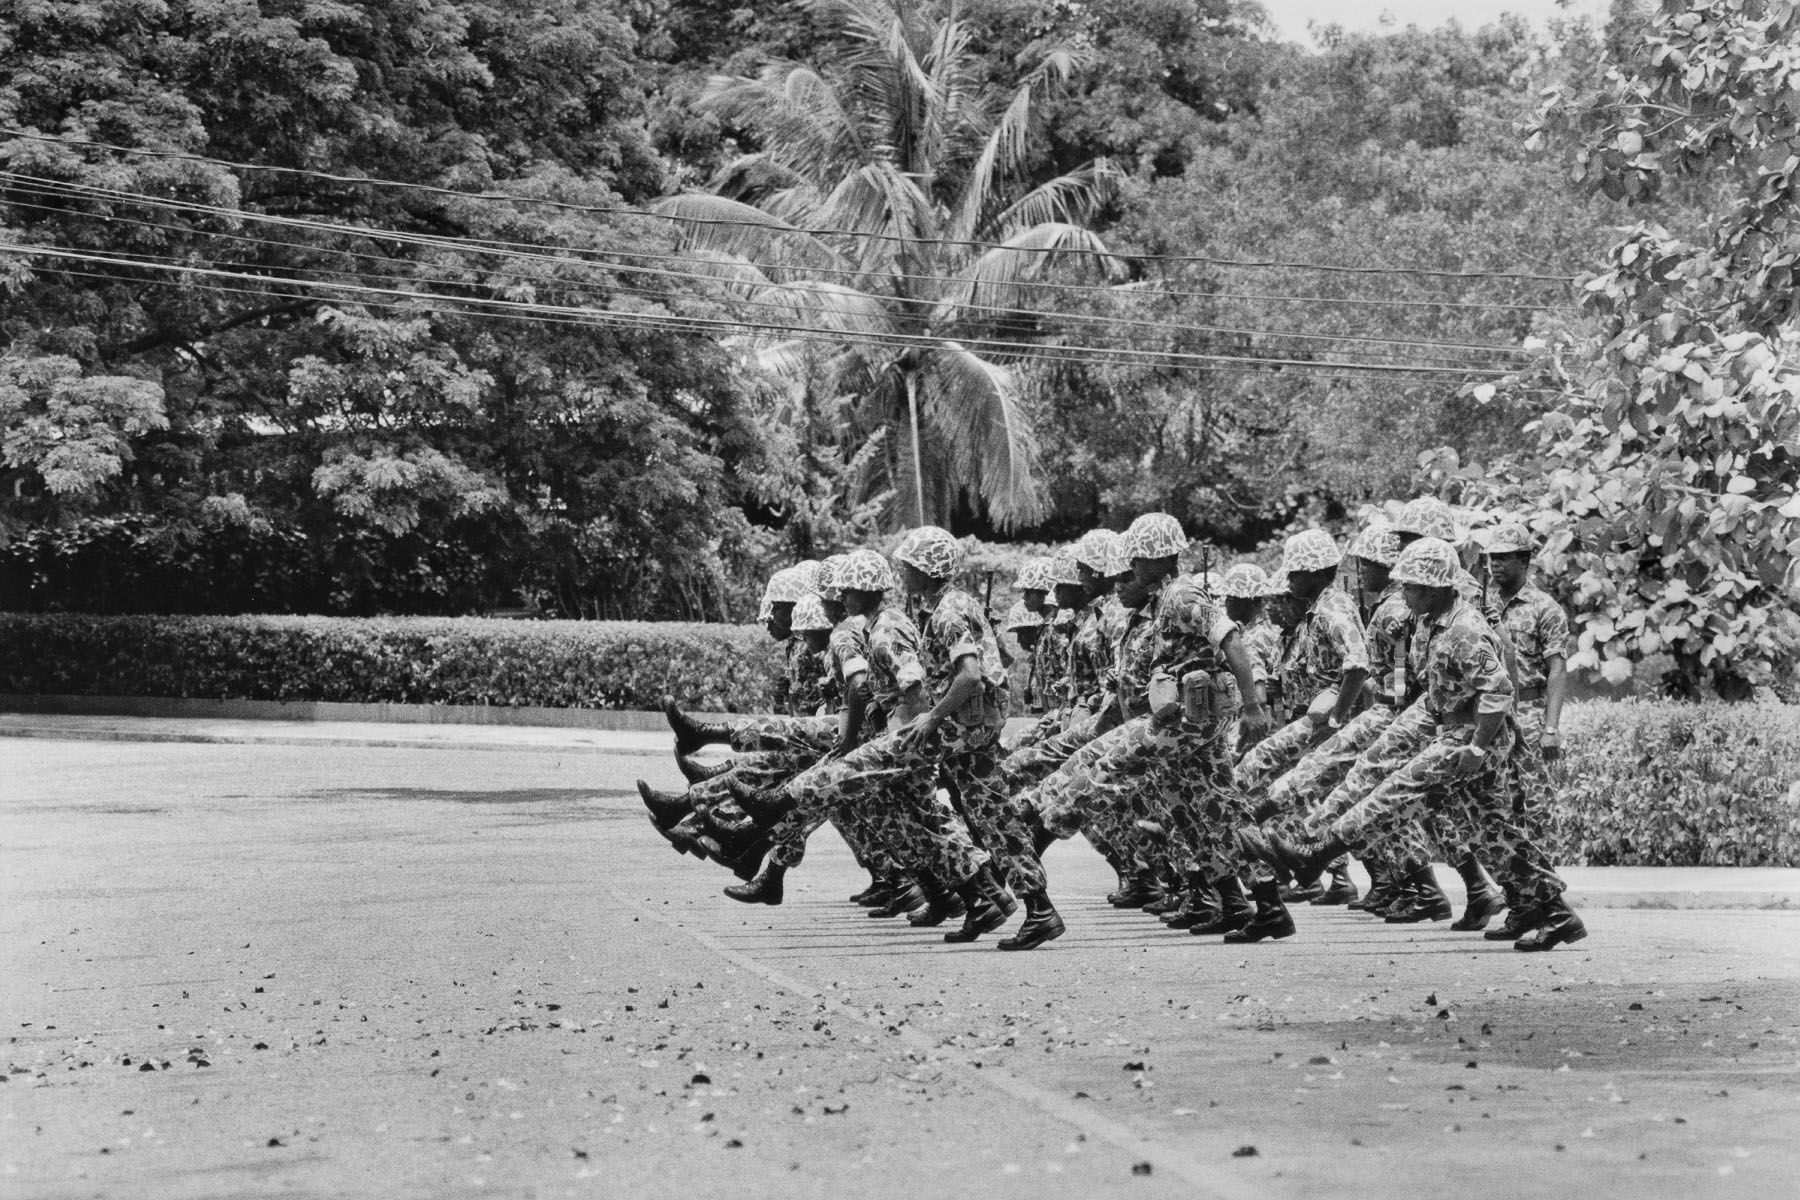 Soldiers of the Leopard special unit drilling in their barracks in August 1986